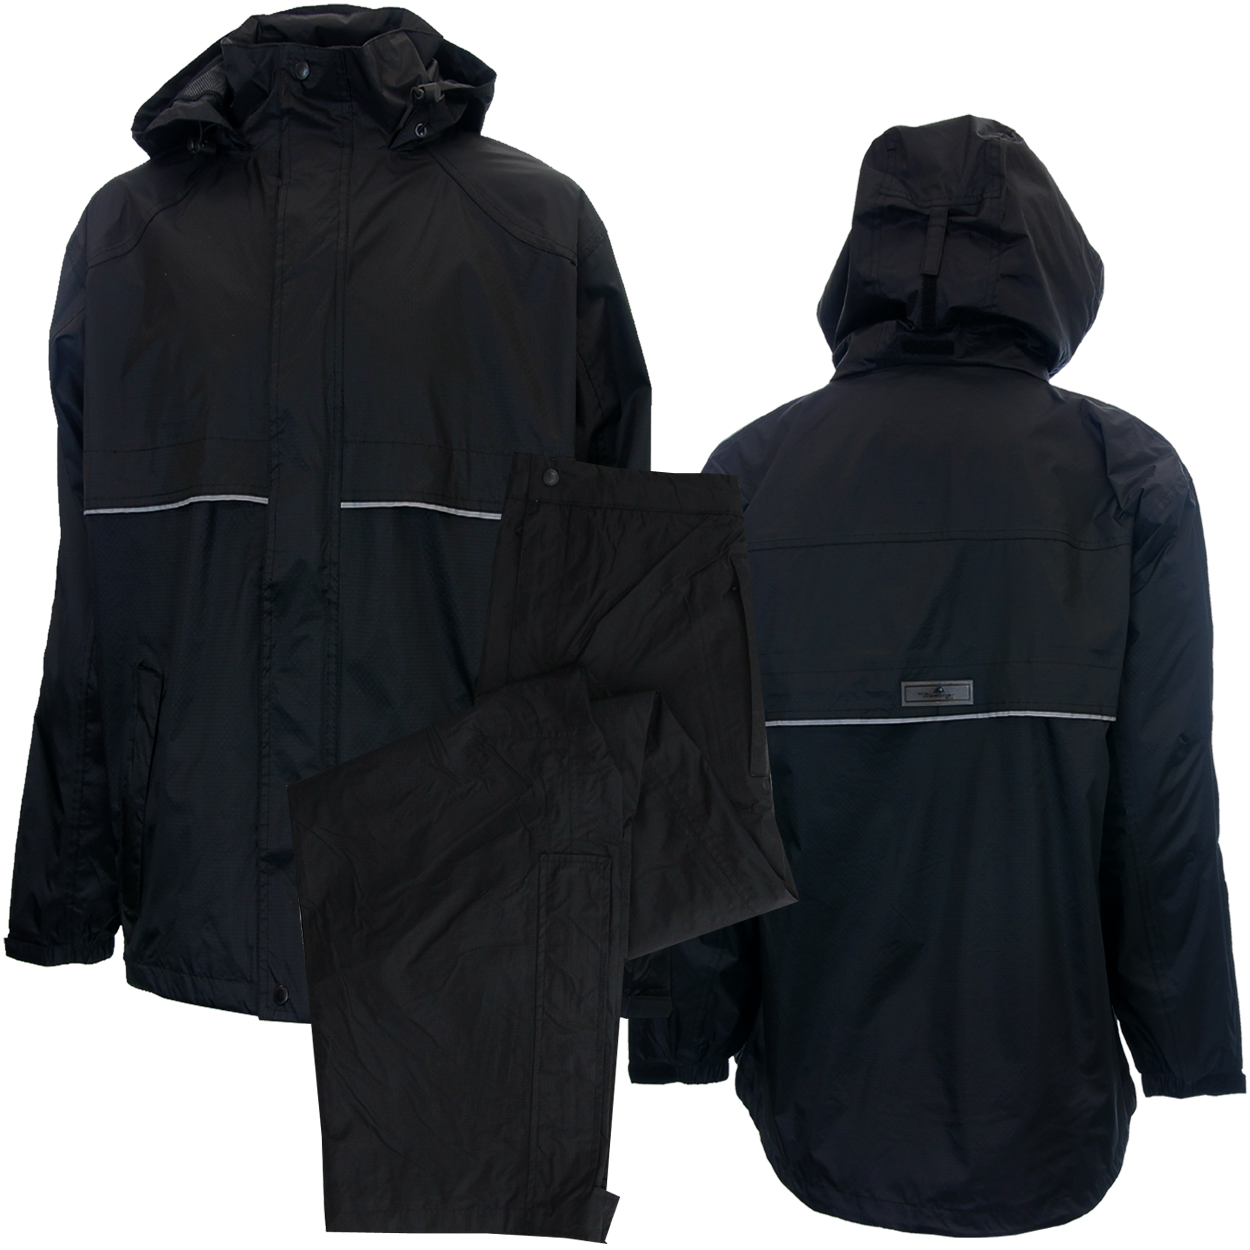 the latest 6b131 1ffbf The Weather Company Men's Golf Breathable Rain Suit with Hood • Jacket &  Pants -